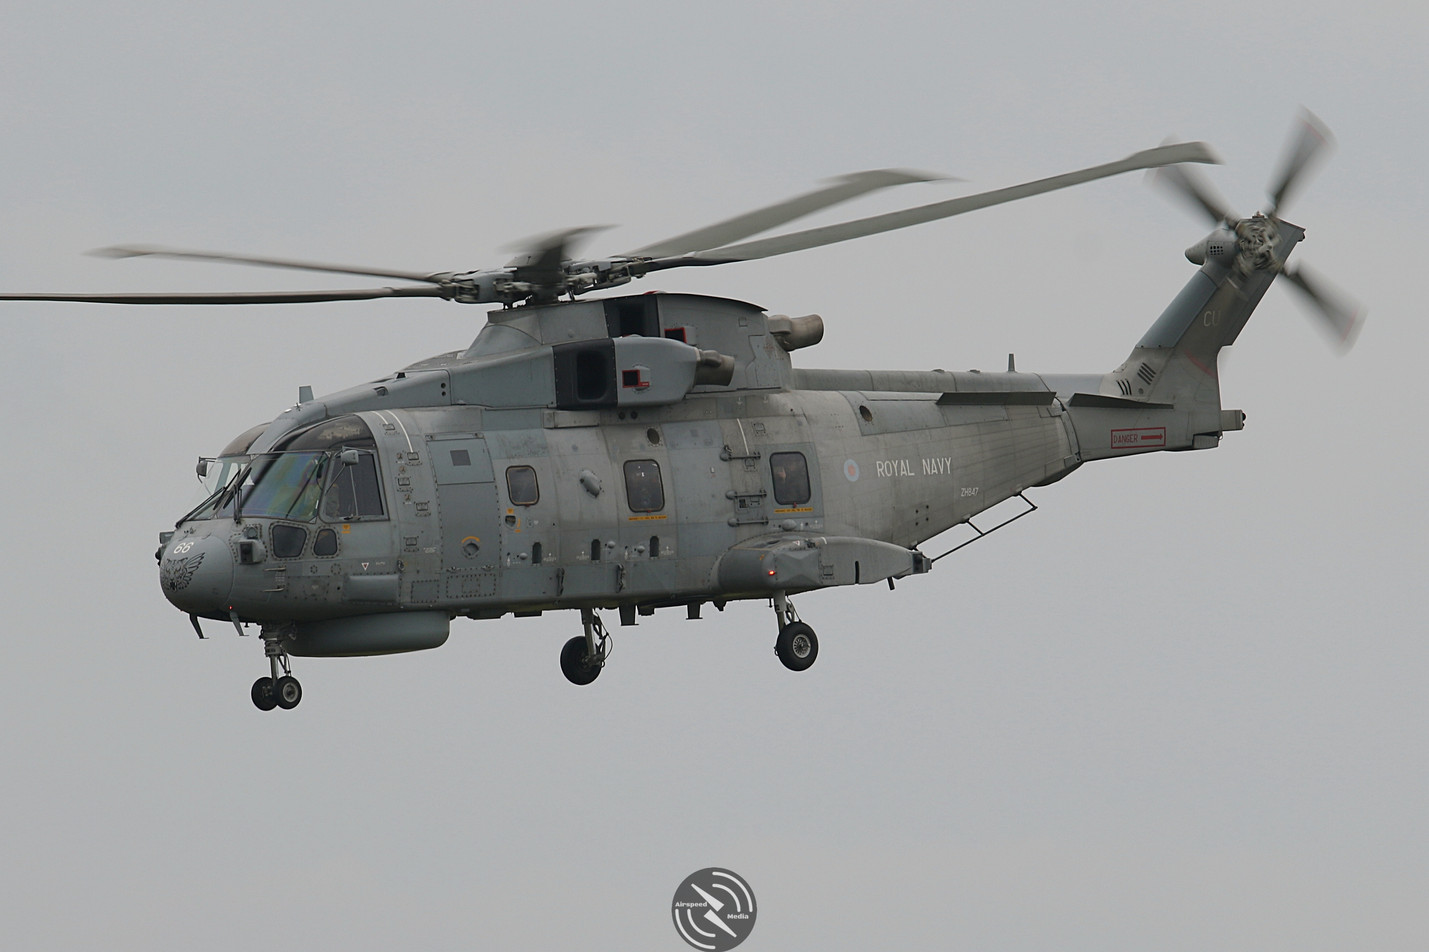 RN Merlin NATO Tiger Meet 2019 (103).JPG